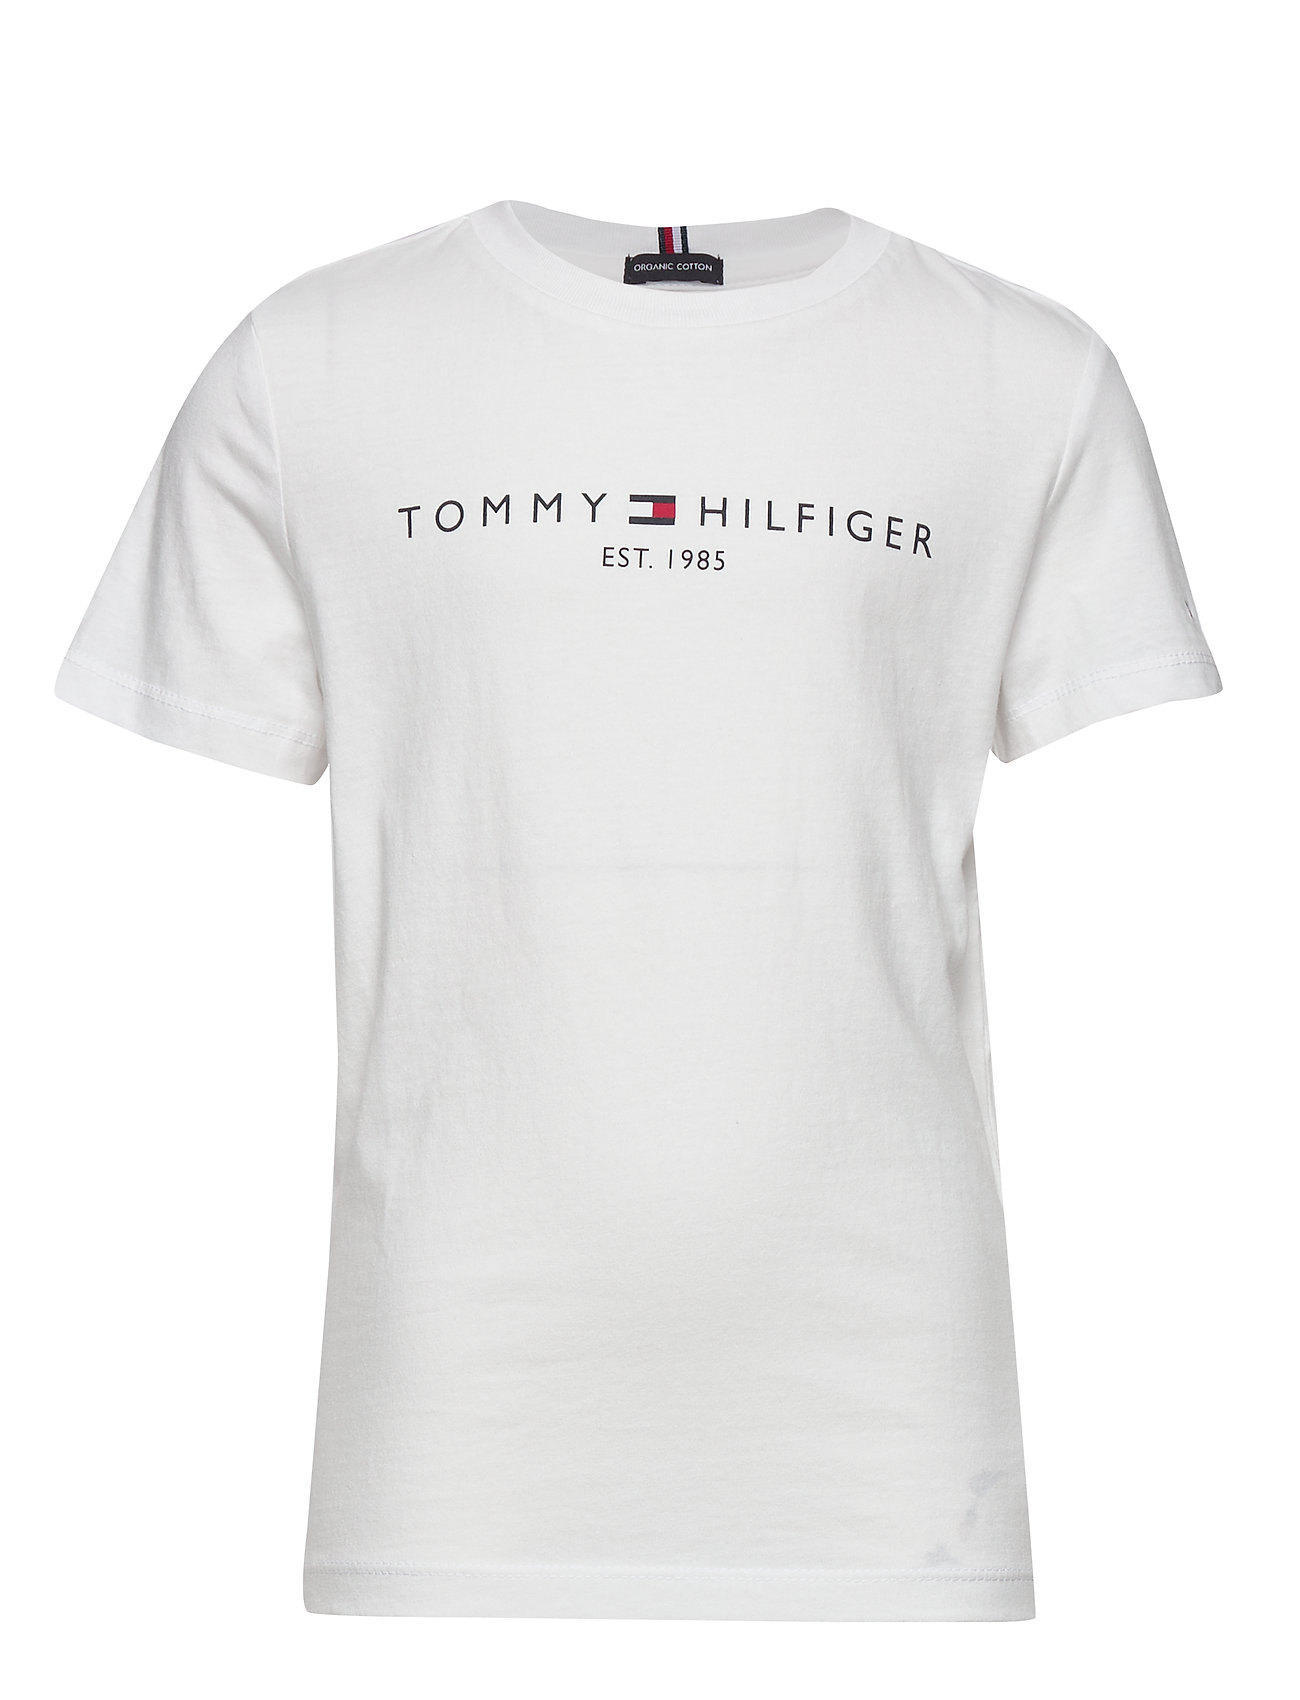 Tommy Hilfiger ESSENTIAL TEE S/S - WHITE 658-170